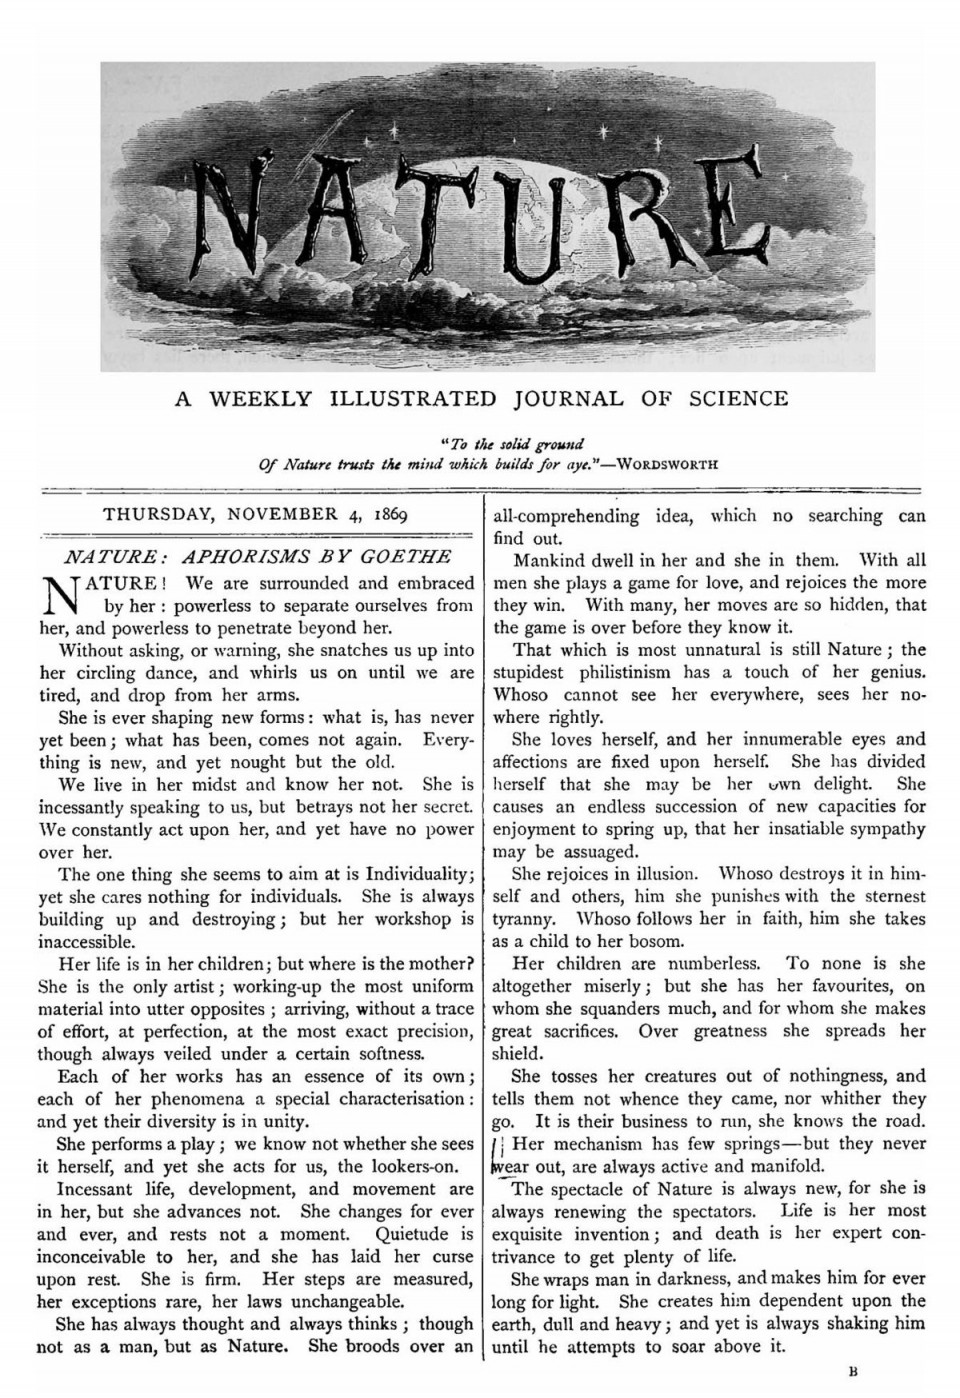 017 Free Research Papers On English Literature Paper 1200px Nature Cover2c November 42c 1869 Amazing 960